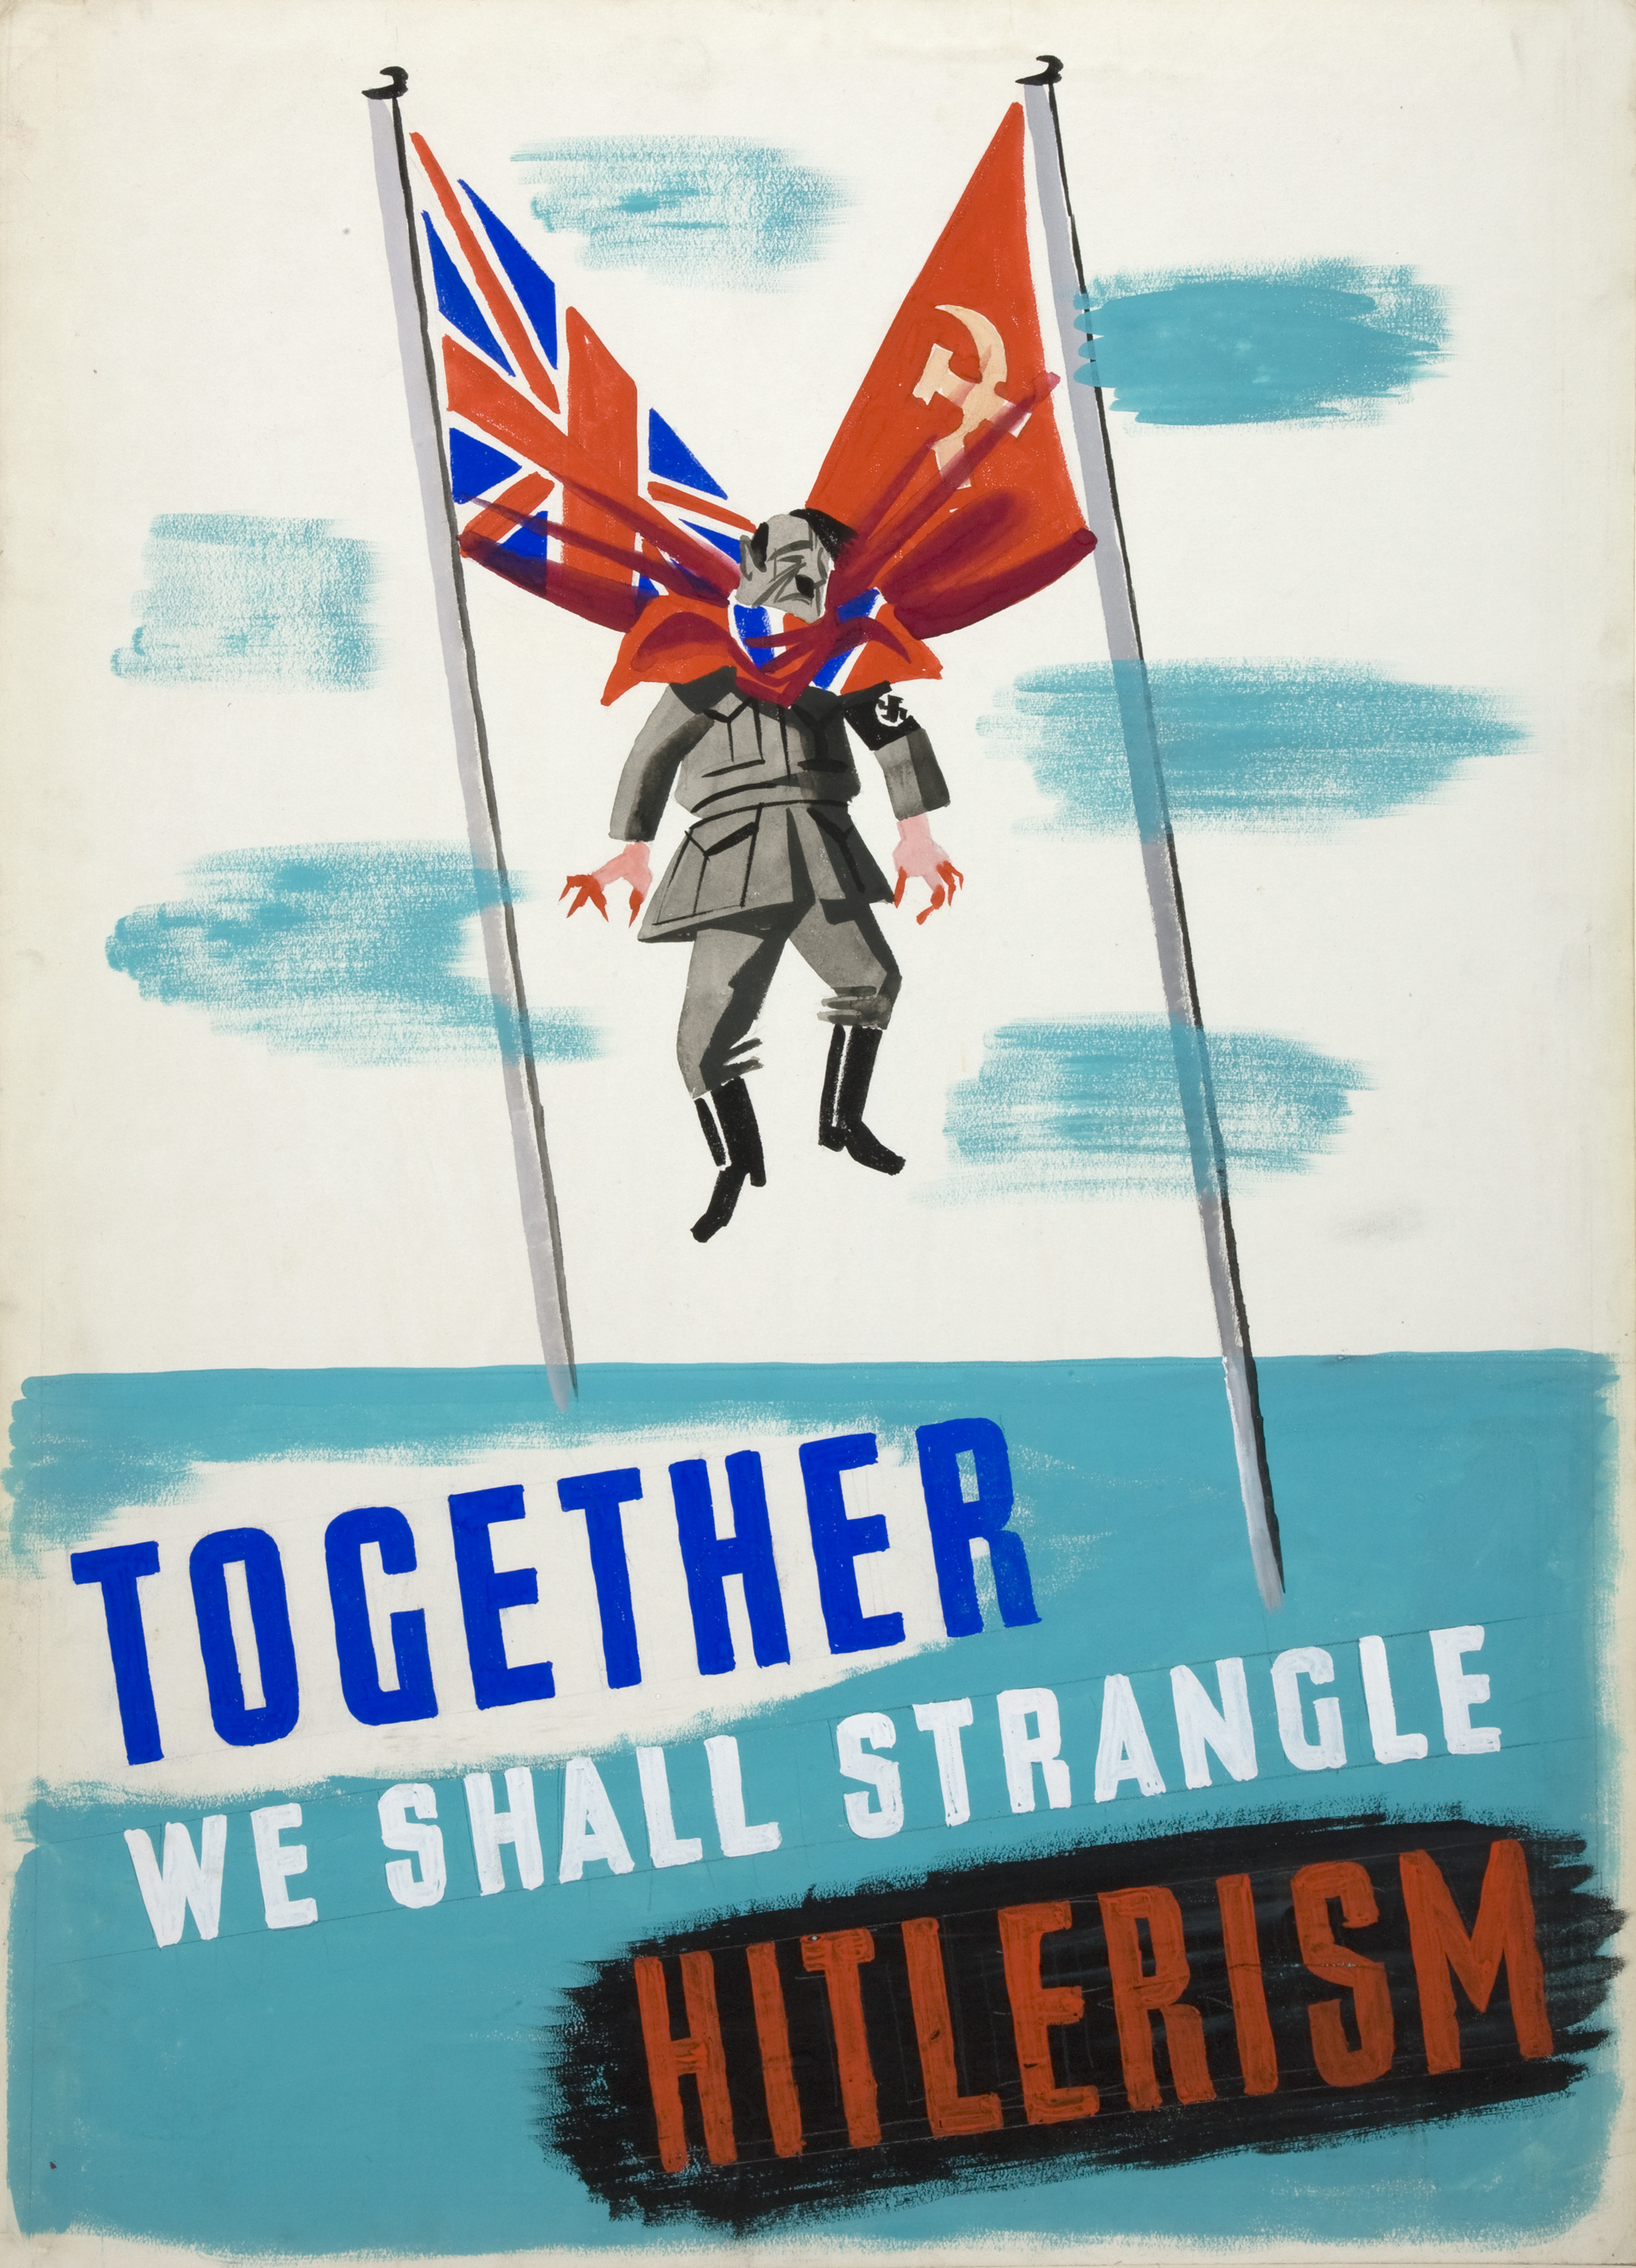 File:INF3-324 Unity of Strength Together we shall strangle